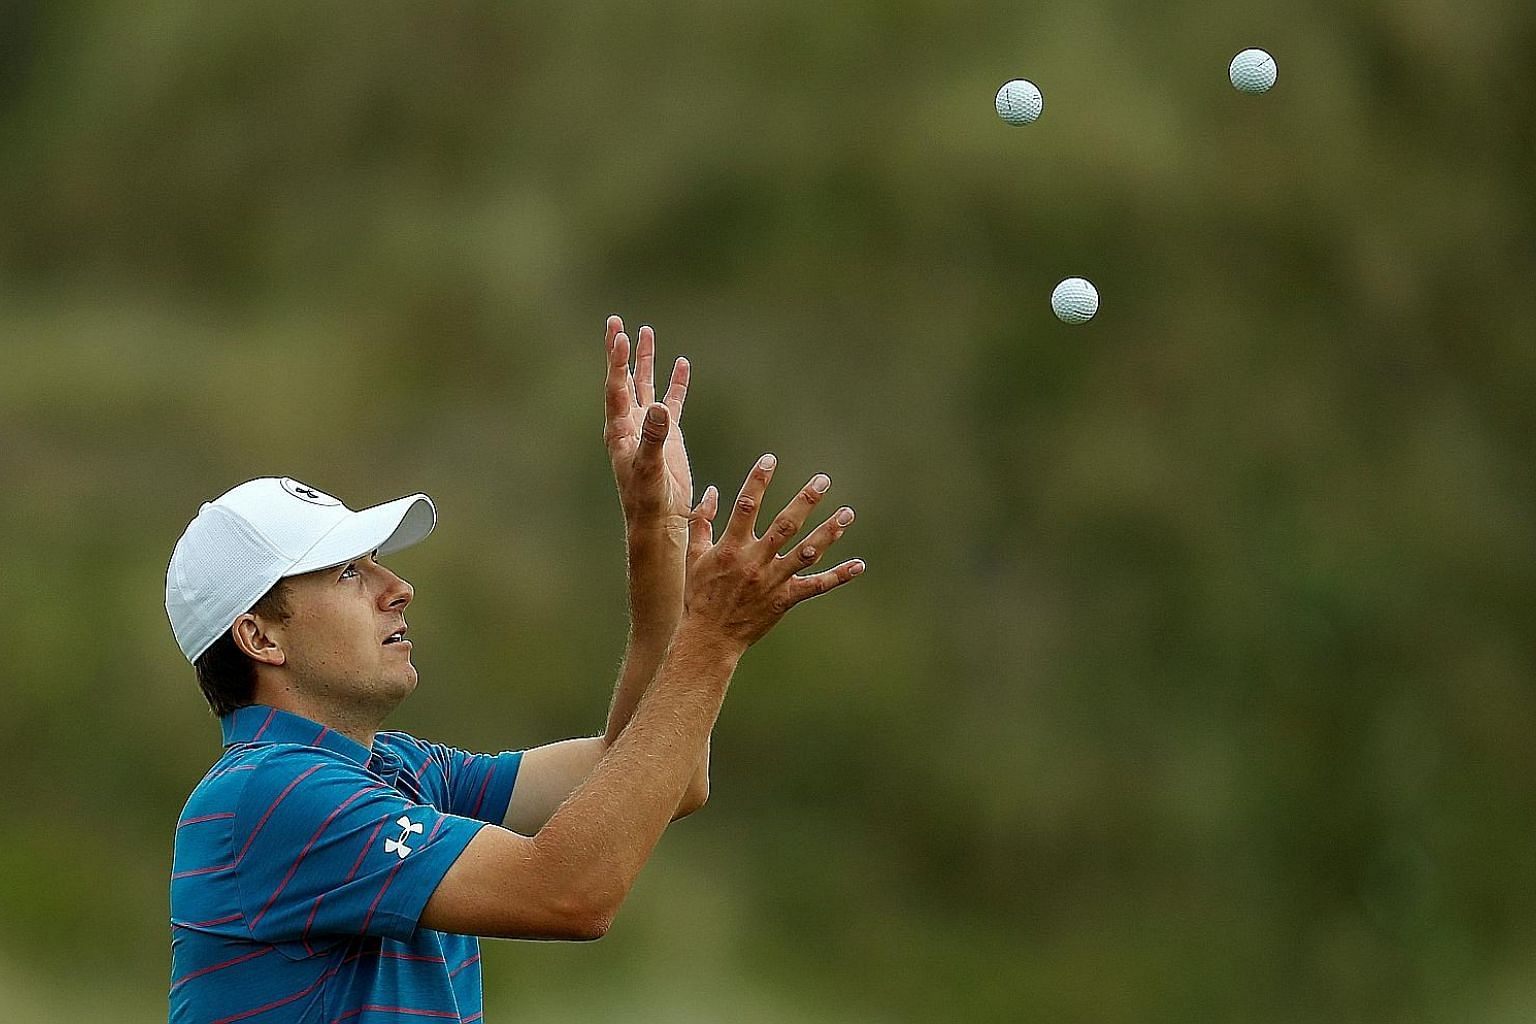 Jordan Spieth is hoping to catch the eye at this week's British Open. He has been tipped as one of the main contenders to lift the Claret Jug.